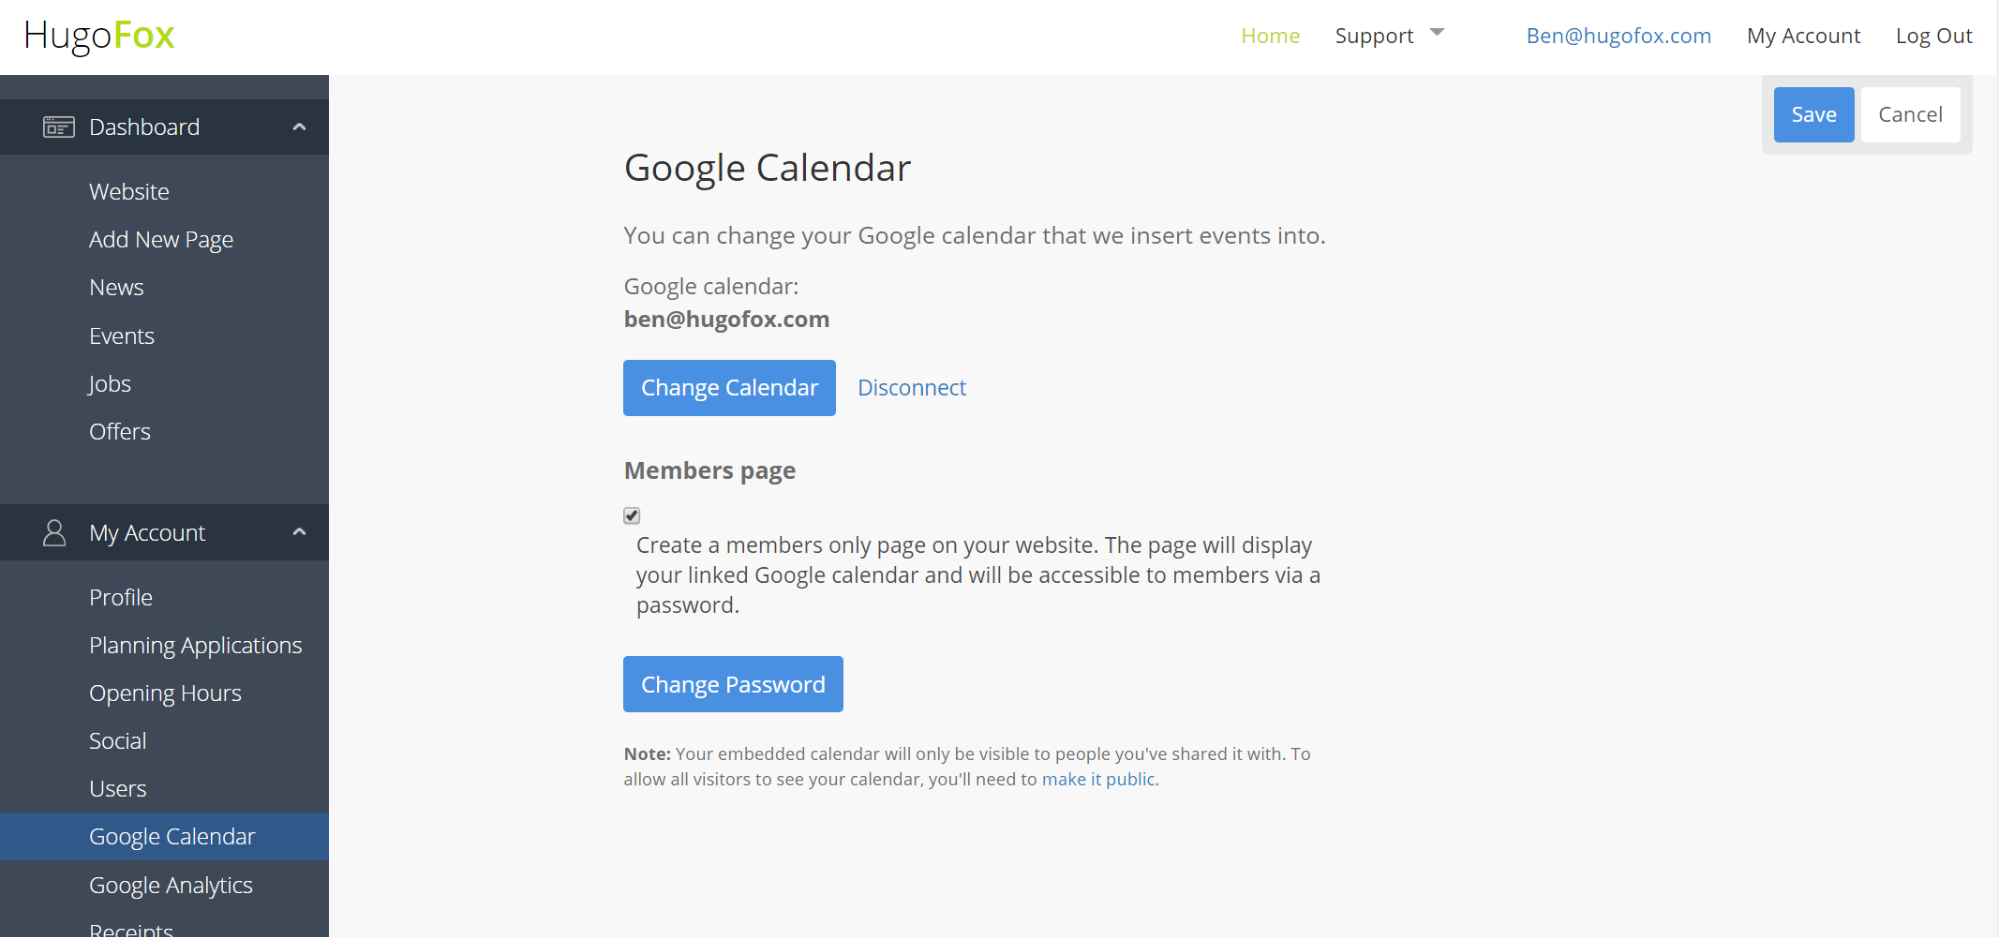 That's it! Your Google Calendar is now linked to your HugoFox account.